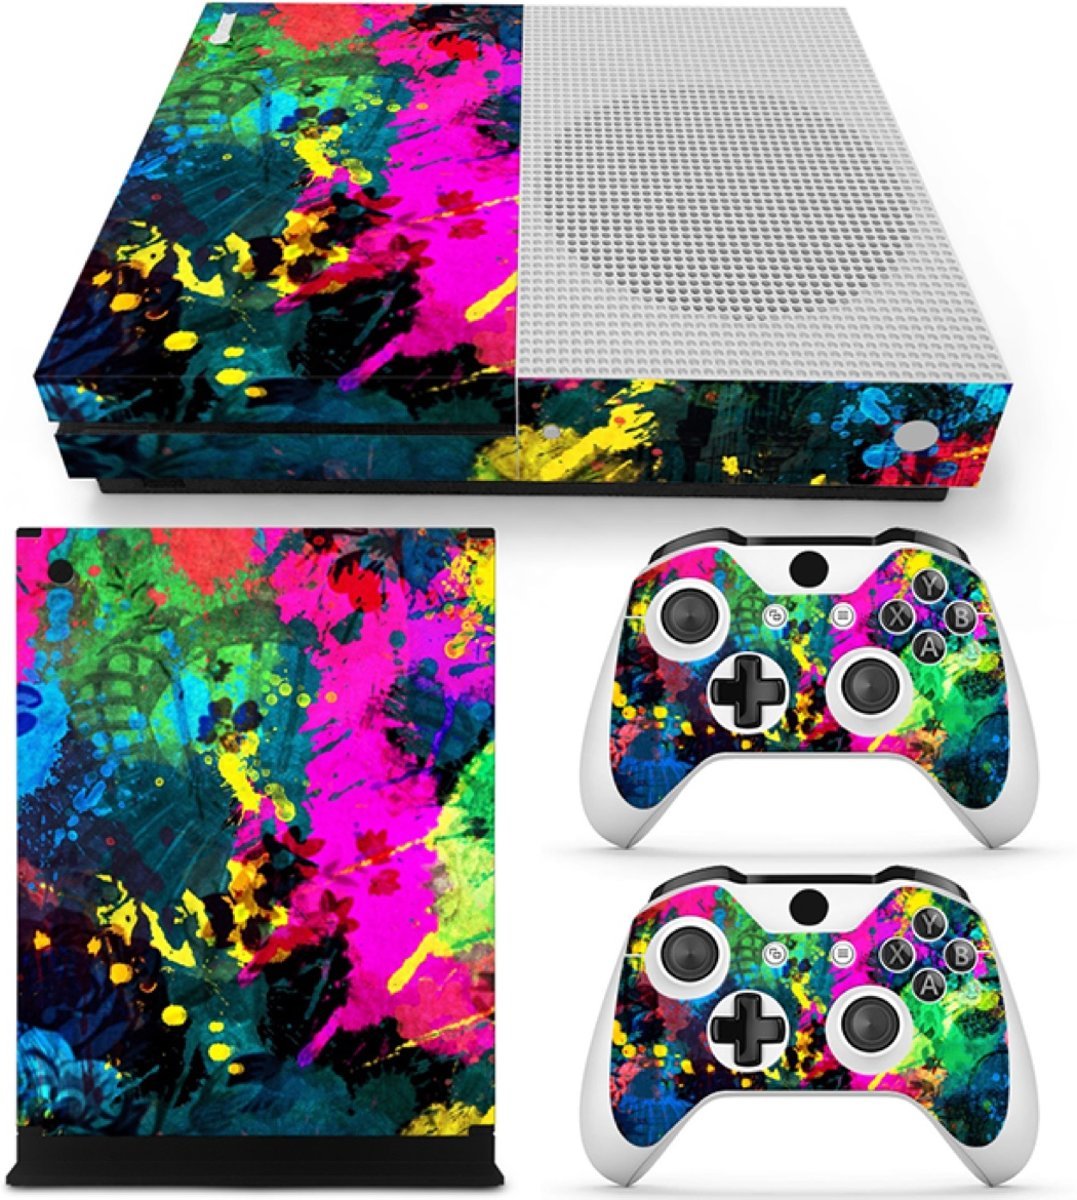 Color Splash - Xbox One S Console Skins Stickers